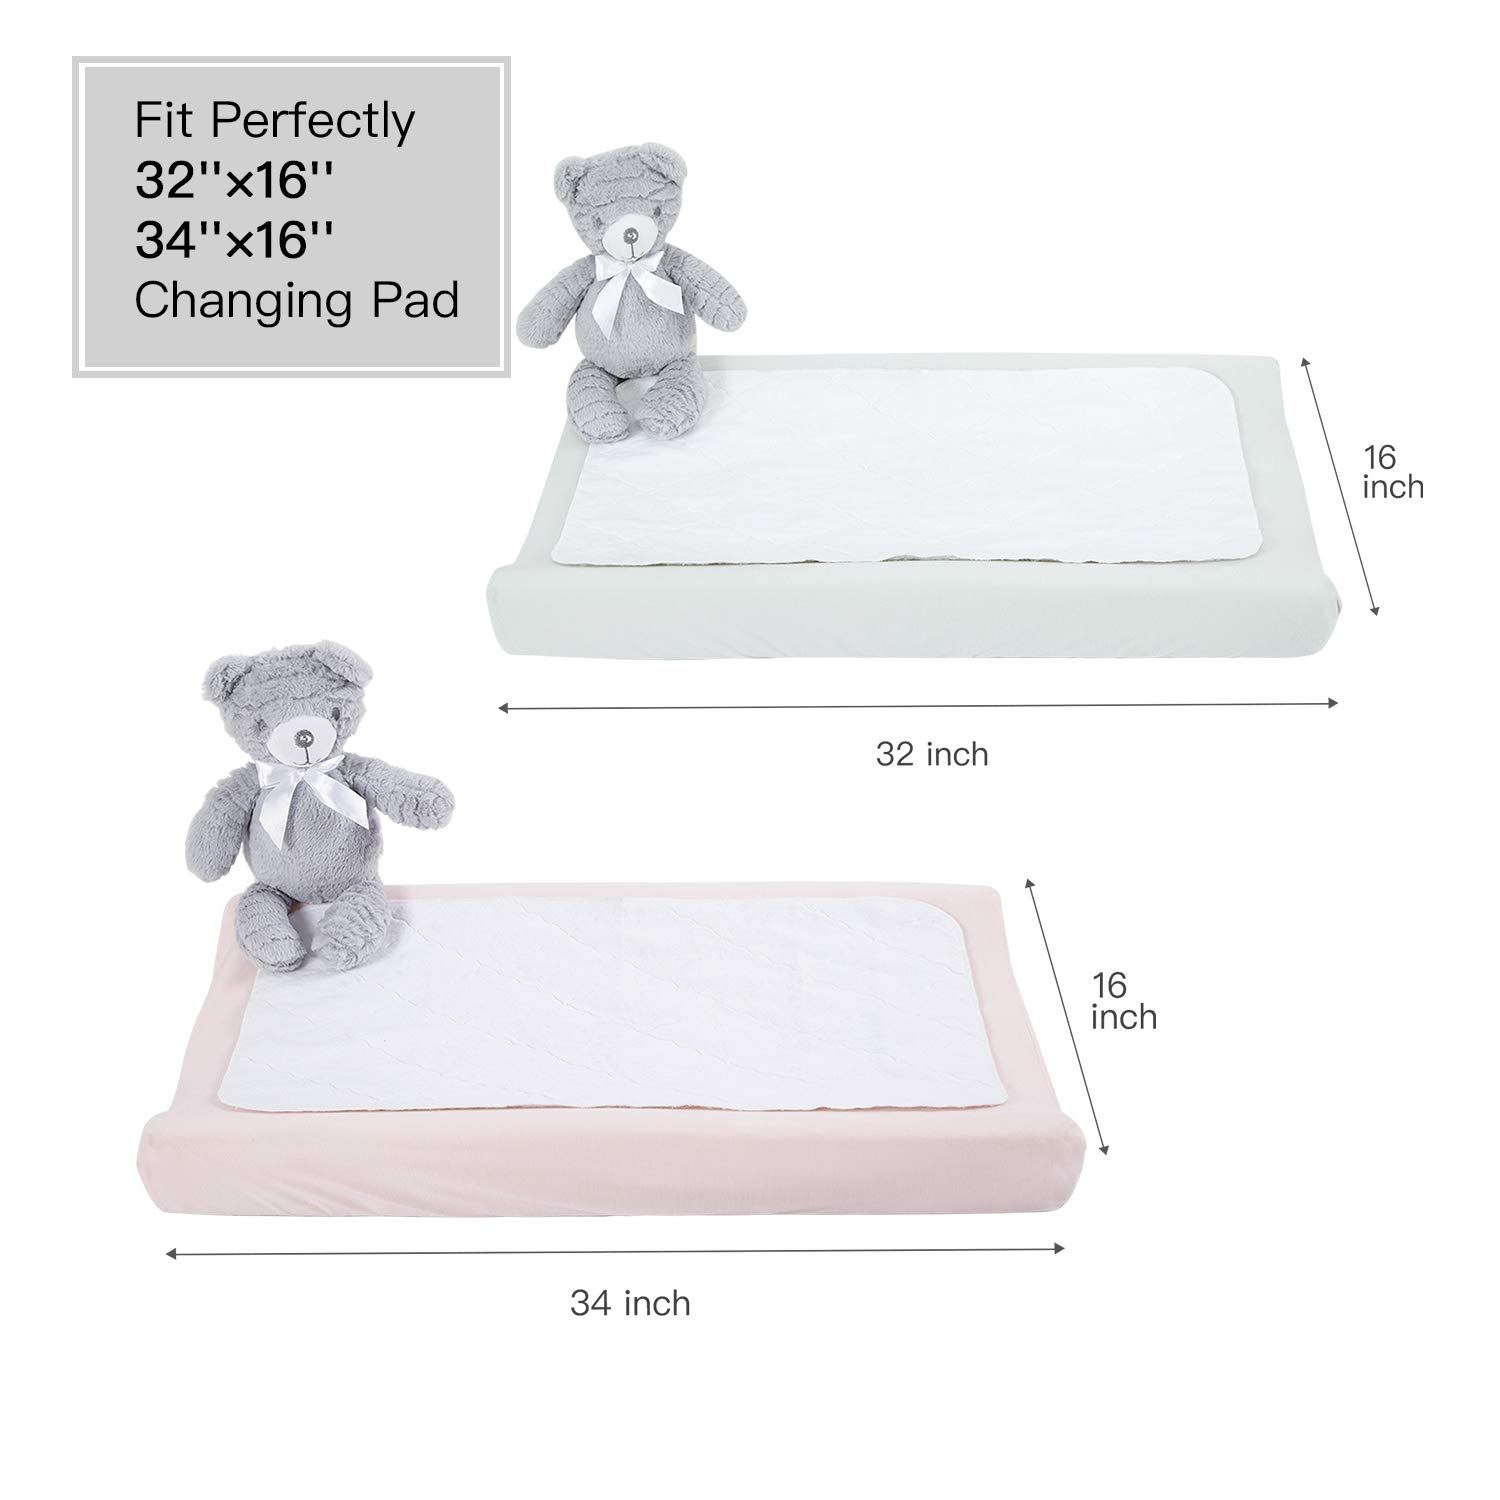 TILLYOU Jersey Knit Stretchy Changing Pad Cover-Cradle Sheet Unisex Change Table Sheets for Baby Girls and Boys-32//34x 16-Ultra Soft Cozy Hypoallergenic-Peachy Pink